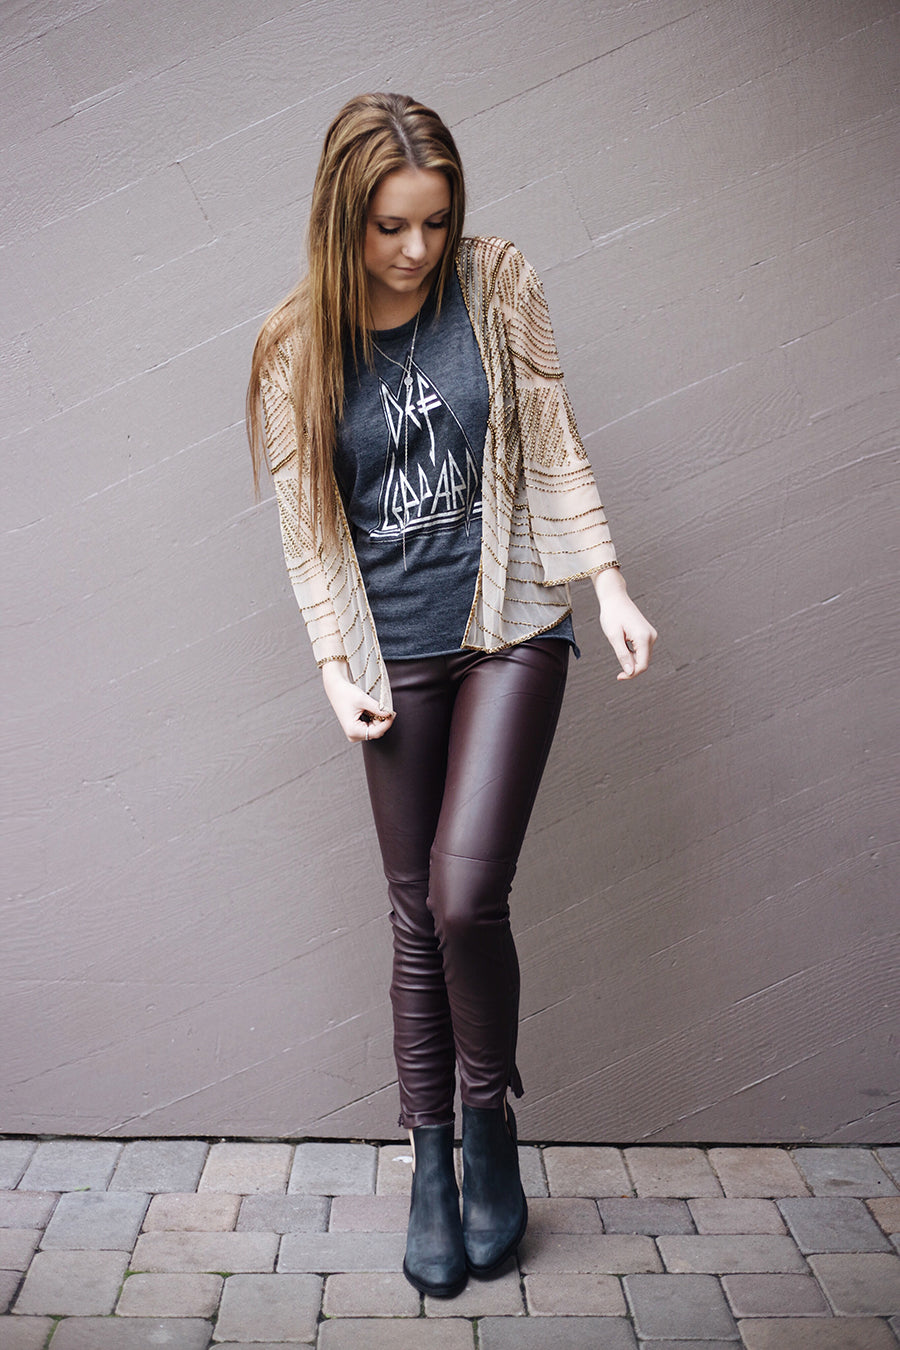 Free People Leather Leggings, RAGA Smoke and Mirrors Jacket